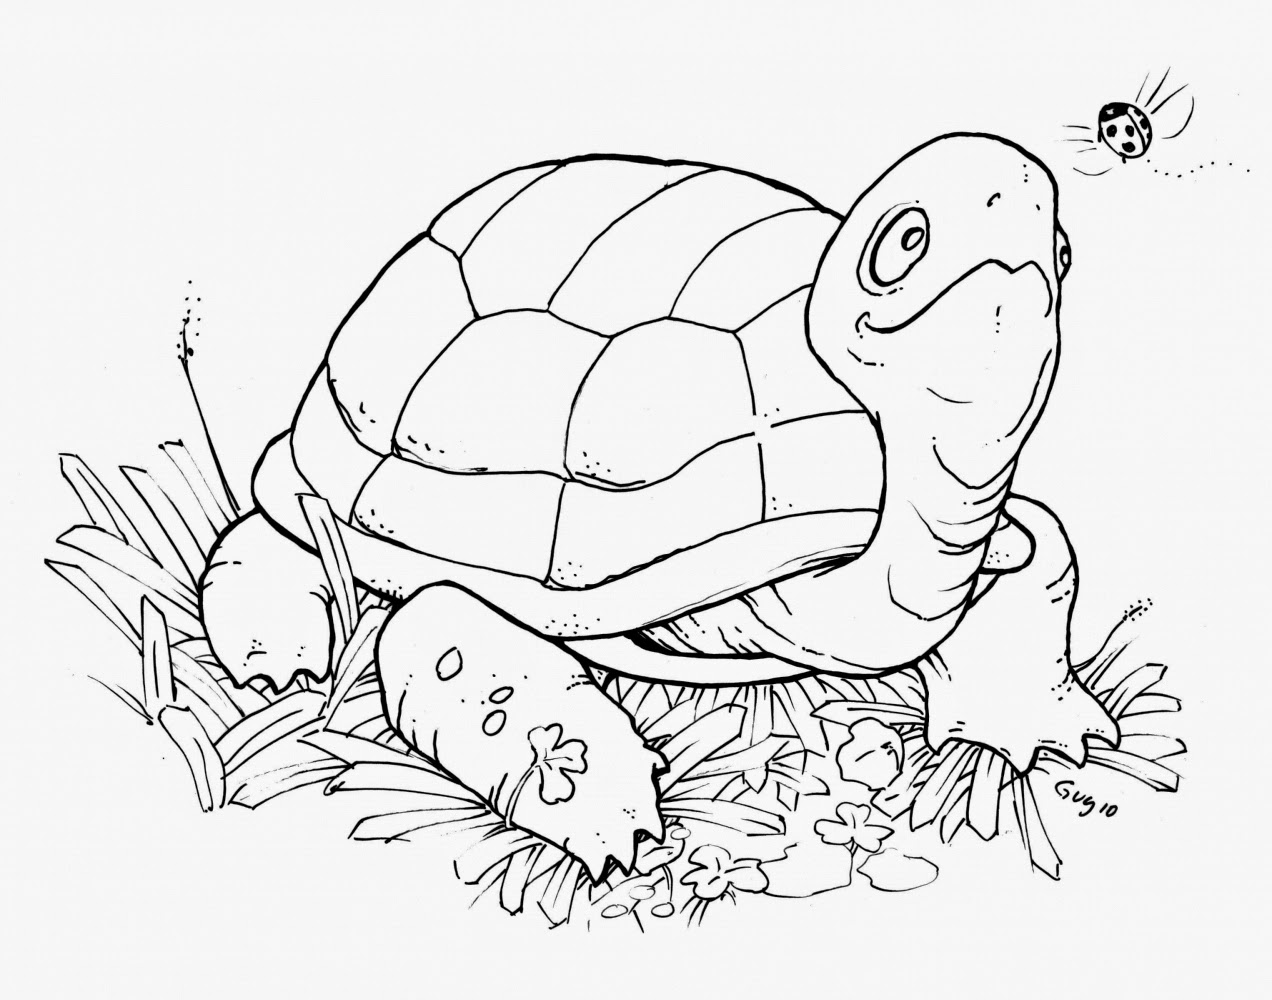 coloring turtles coloring pages turtles free printable coloring pages turtles coloring